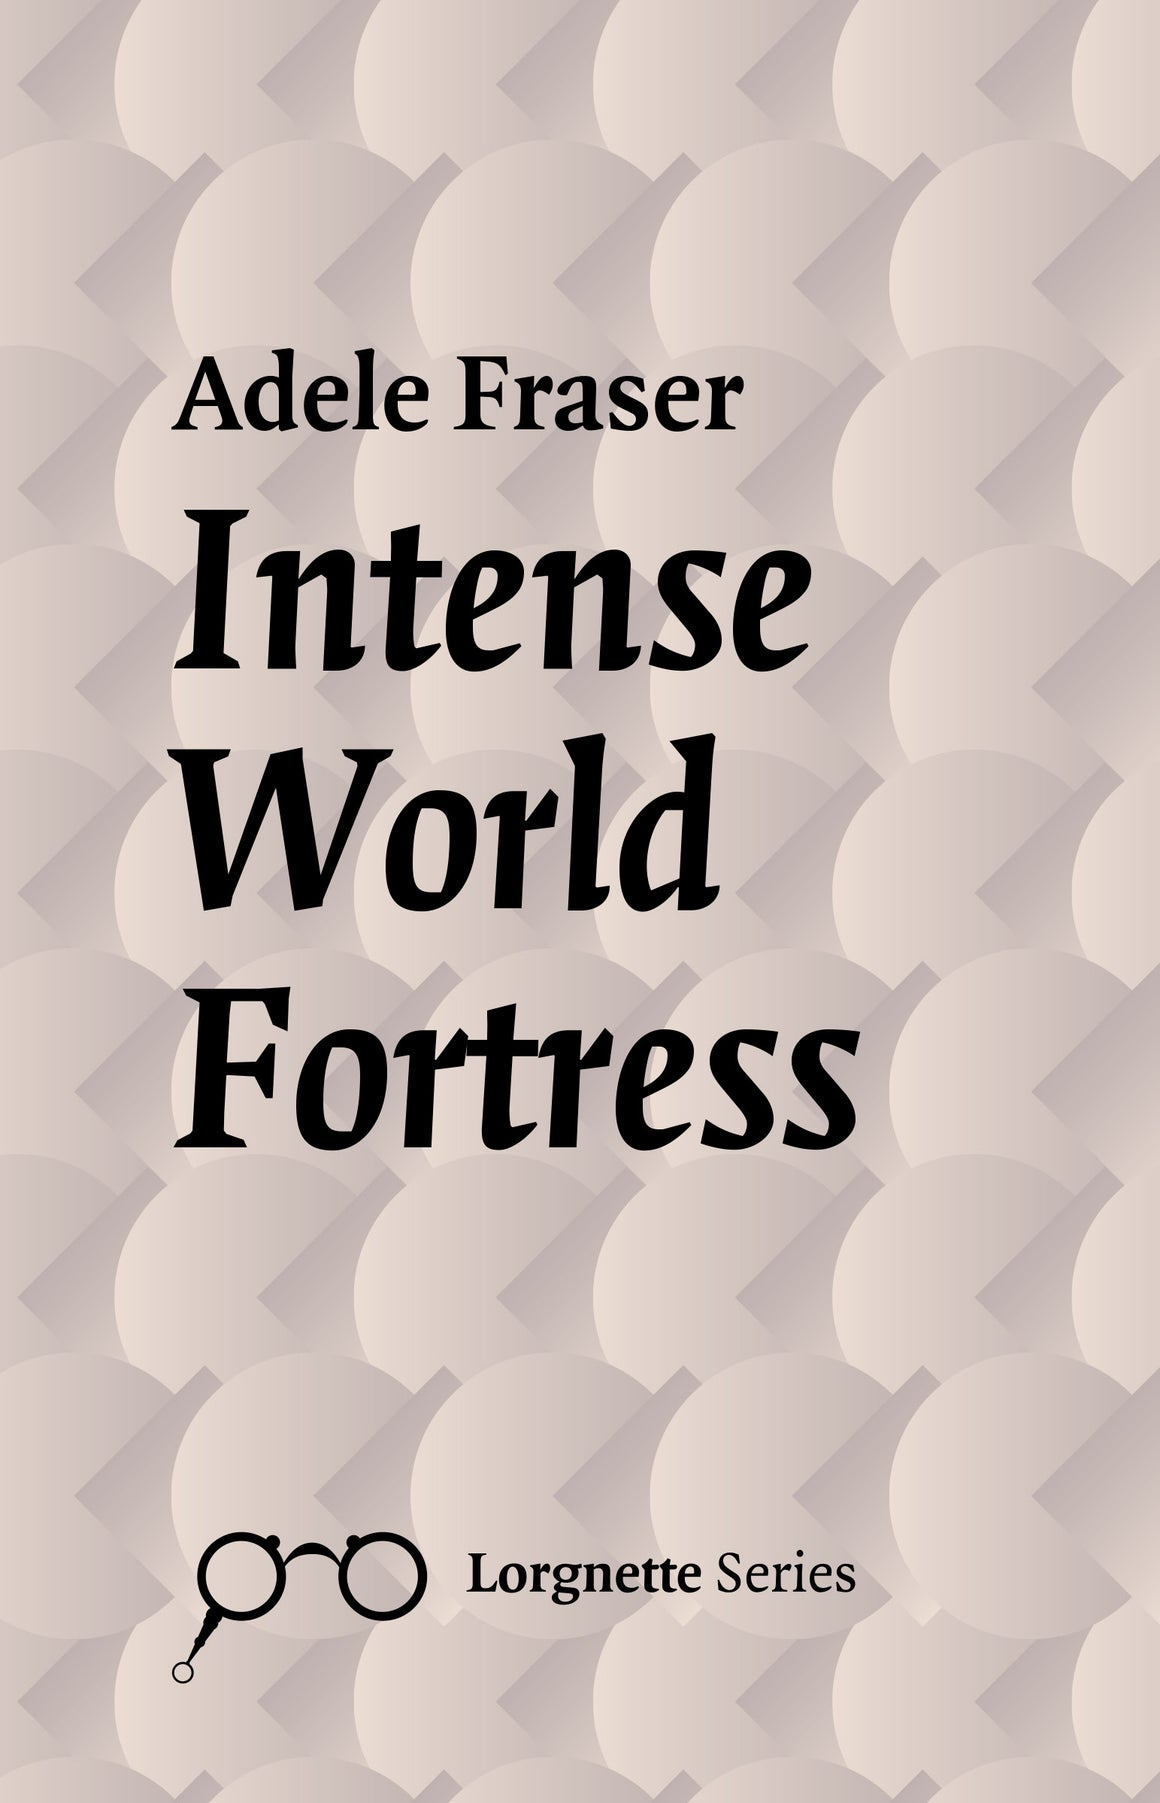 INTENSE WORLD FORTRESS